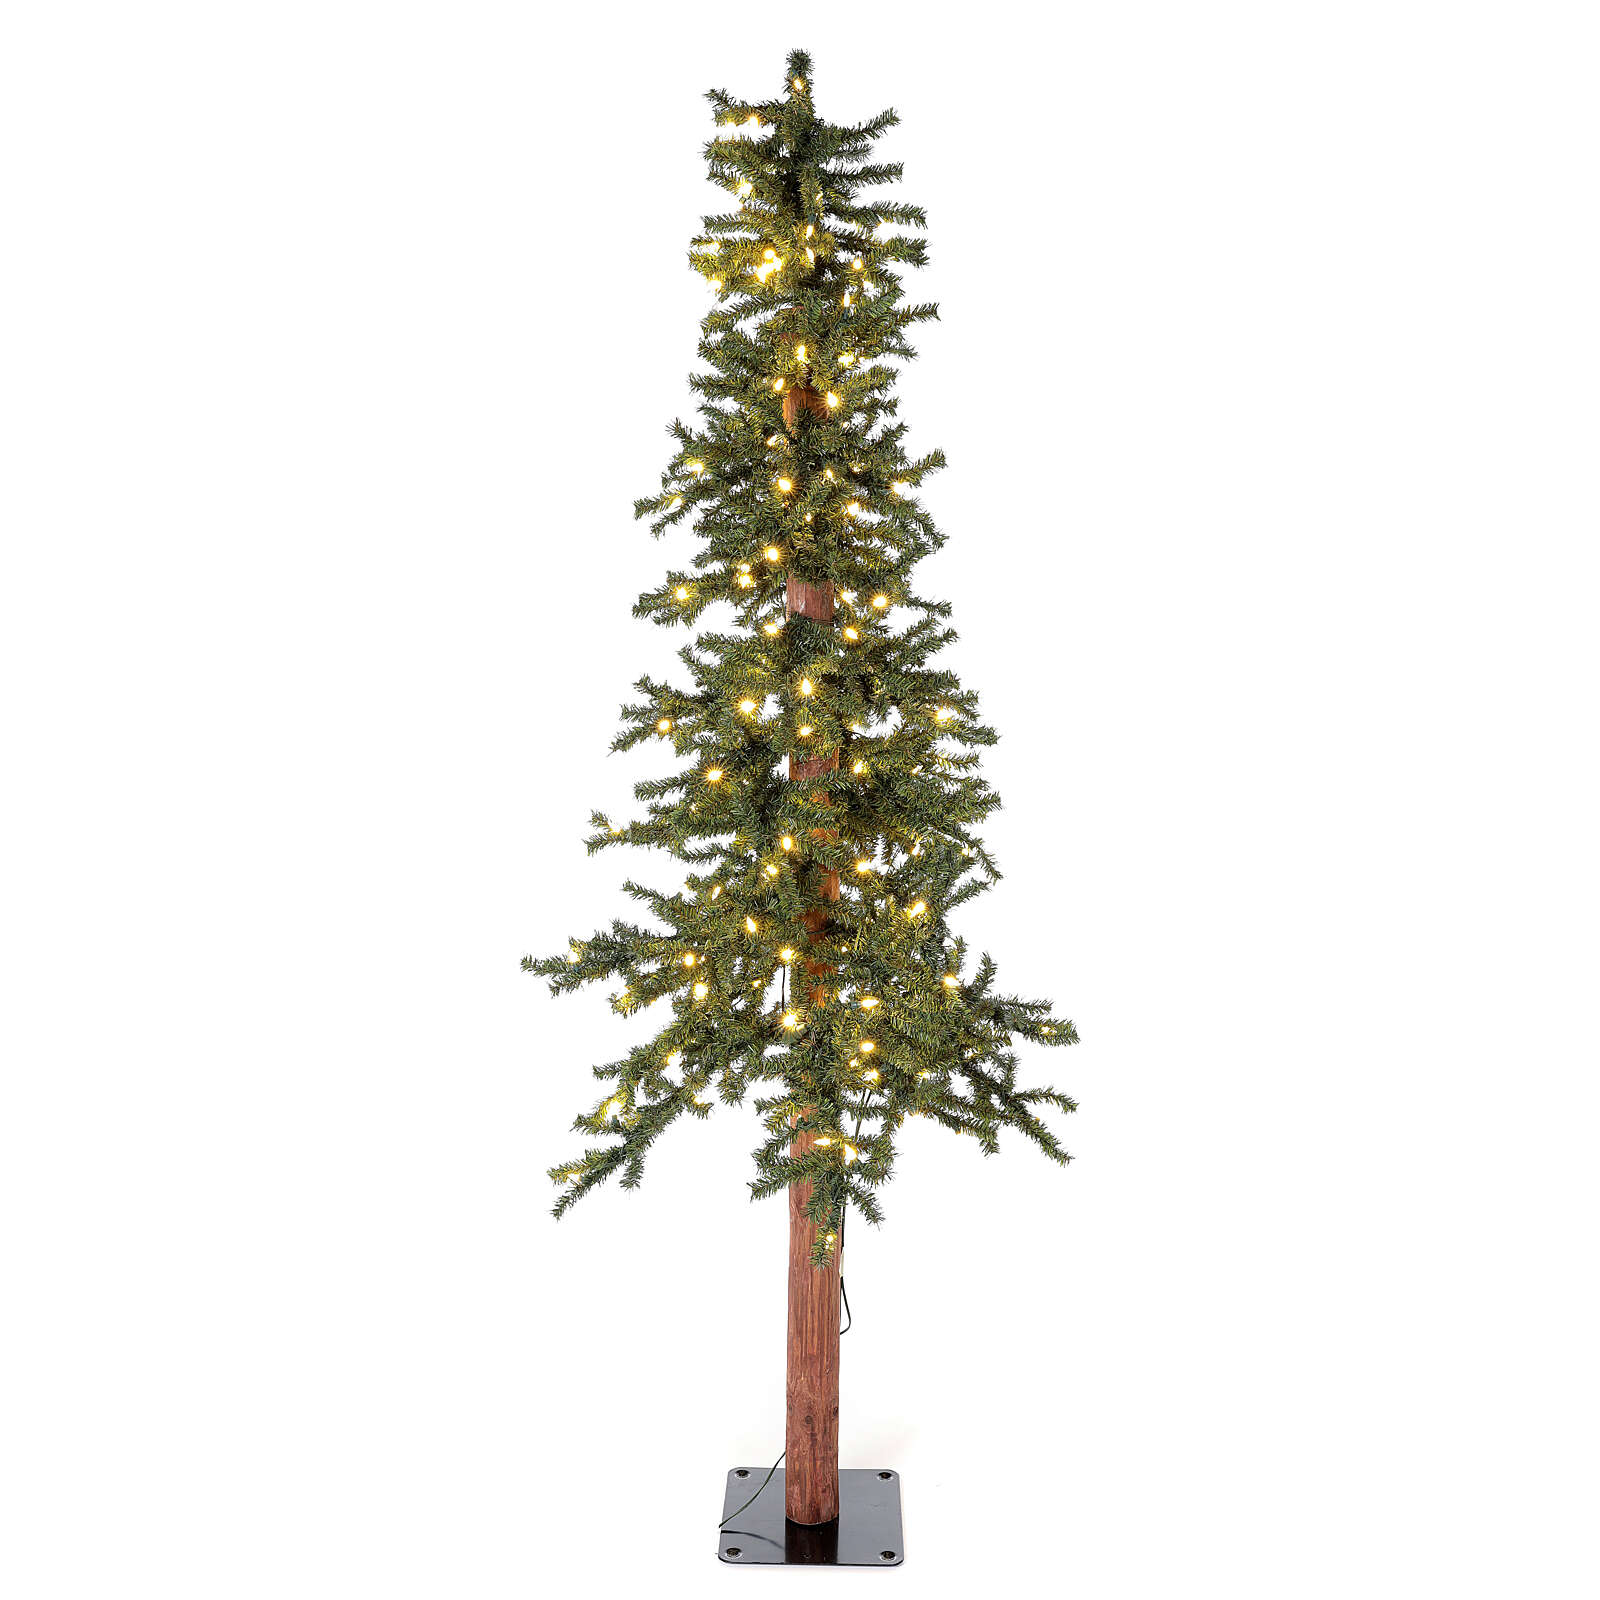 STOCK Slim Forest Christmas tree 300 cm with 600 warm white LEDs outdoor 3